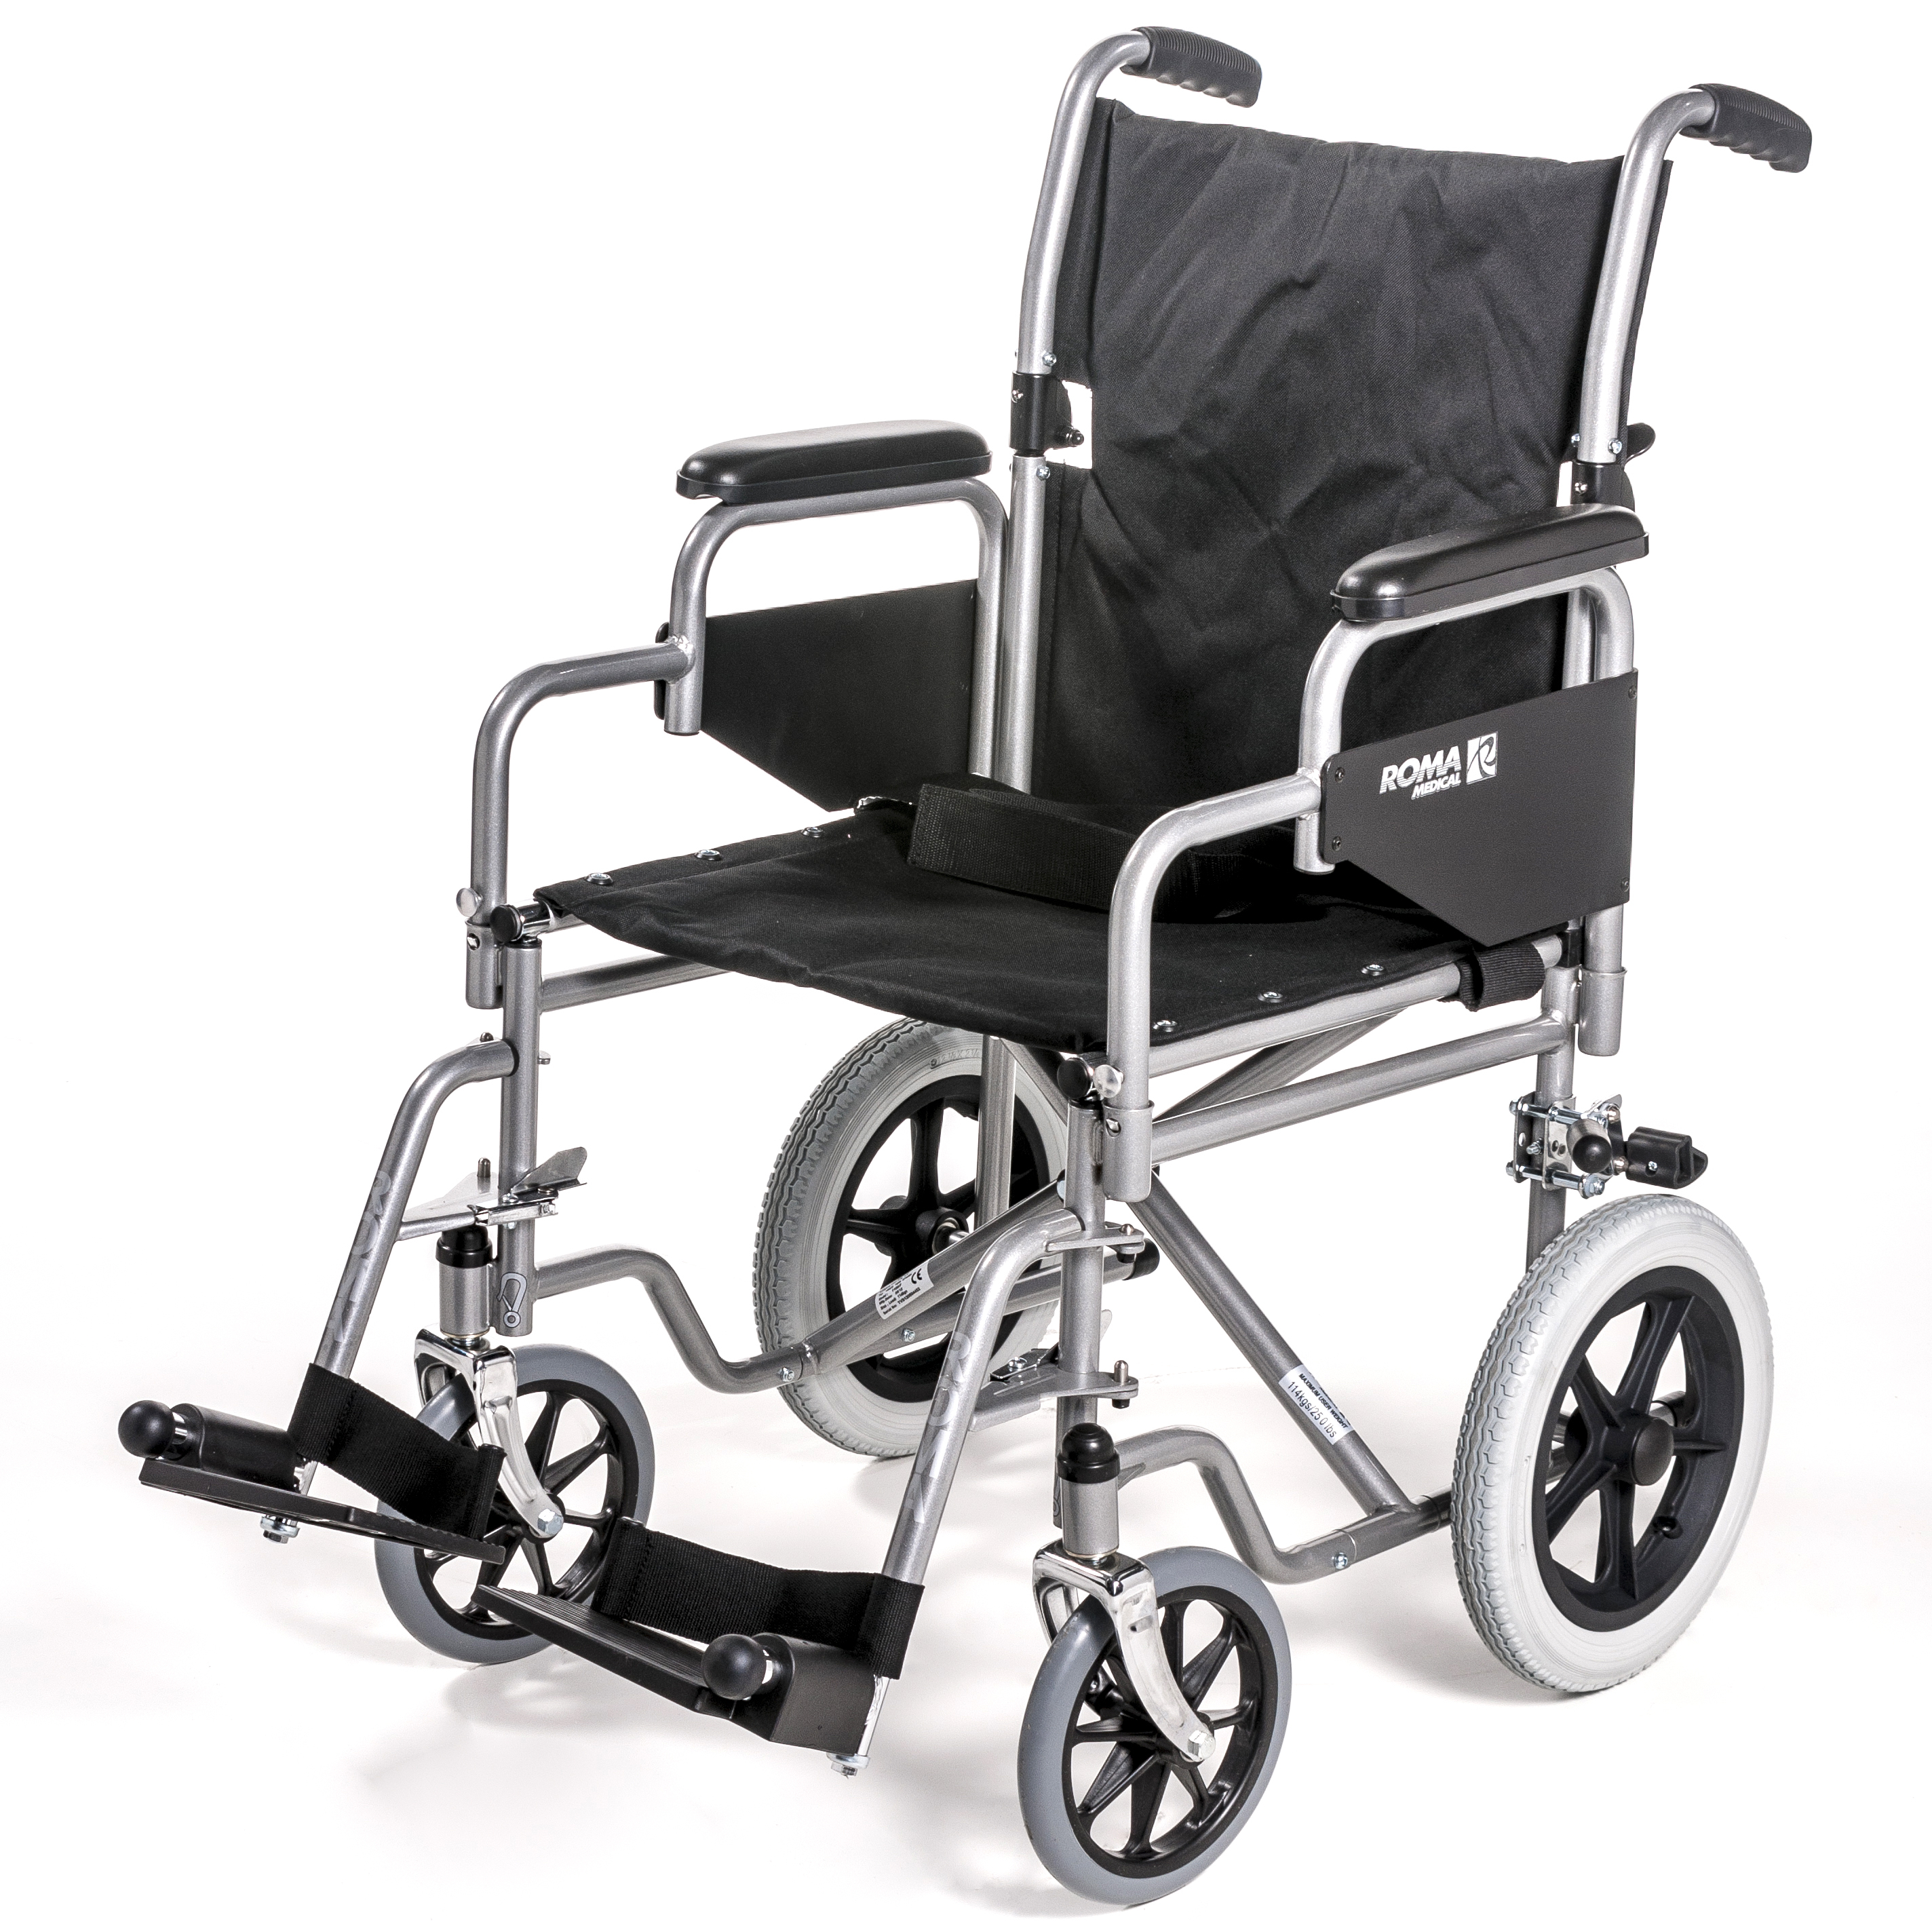 Car Transit Wheelchair - Detachable Arms & Foldaway Footrests